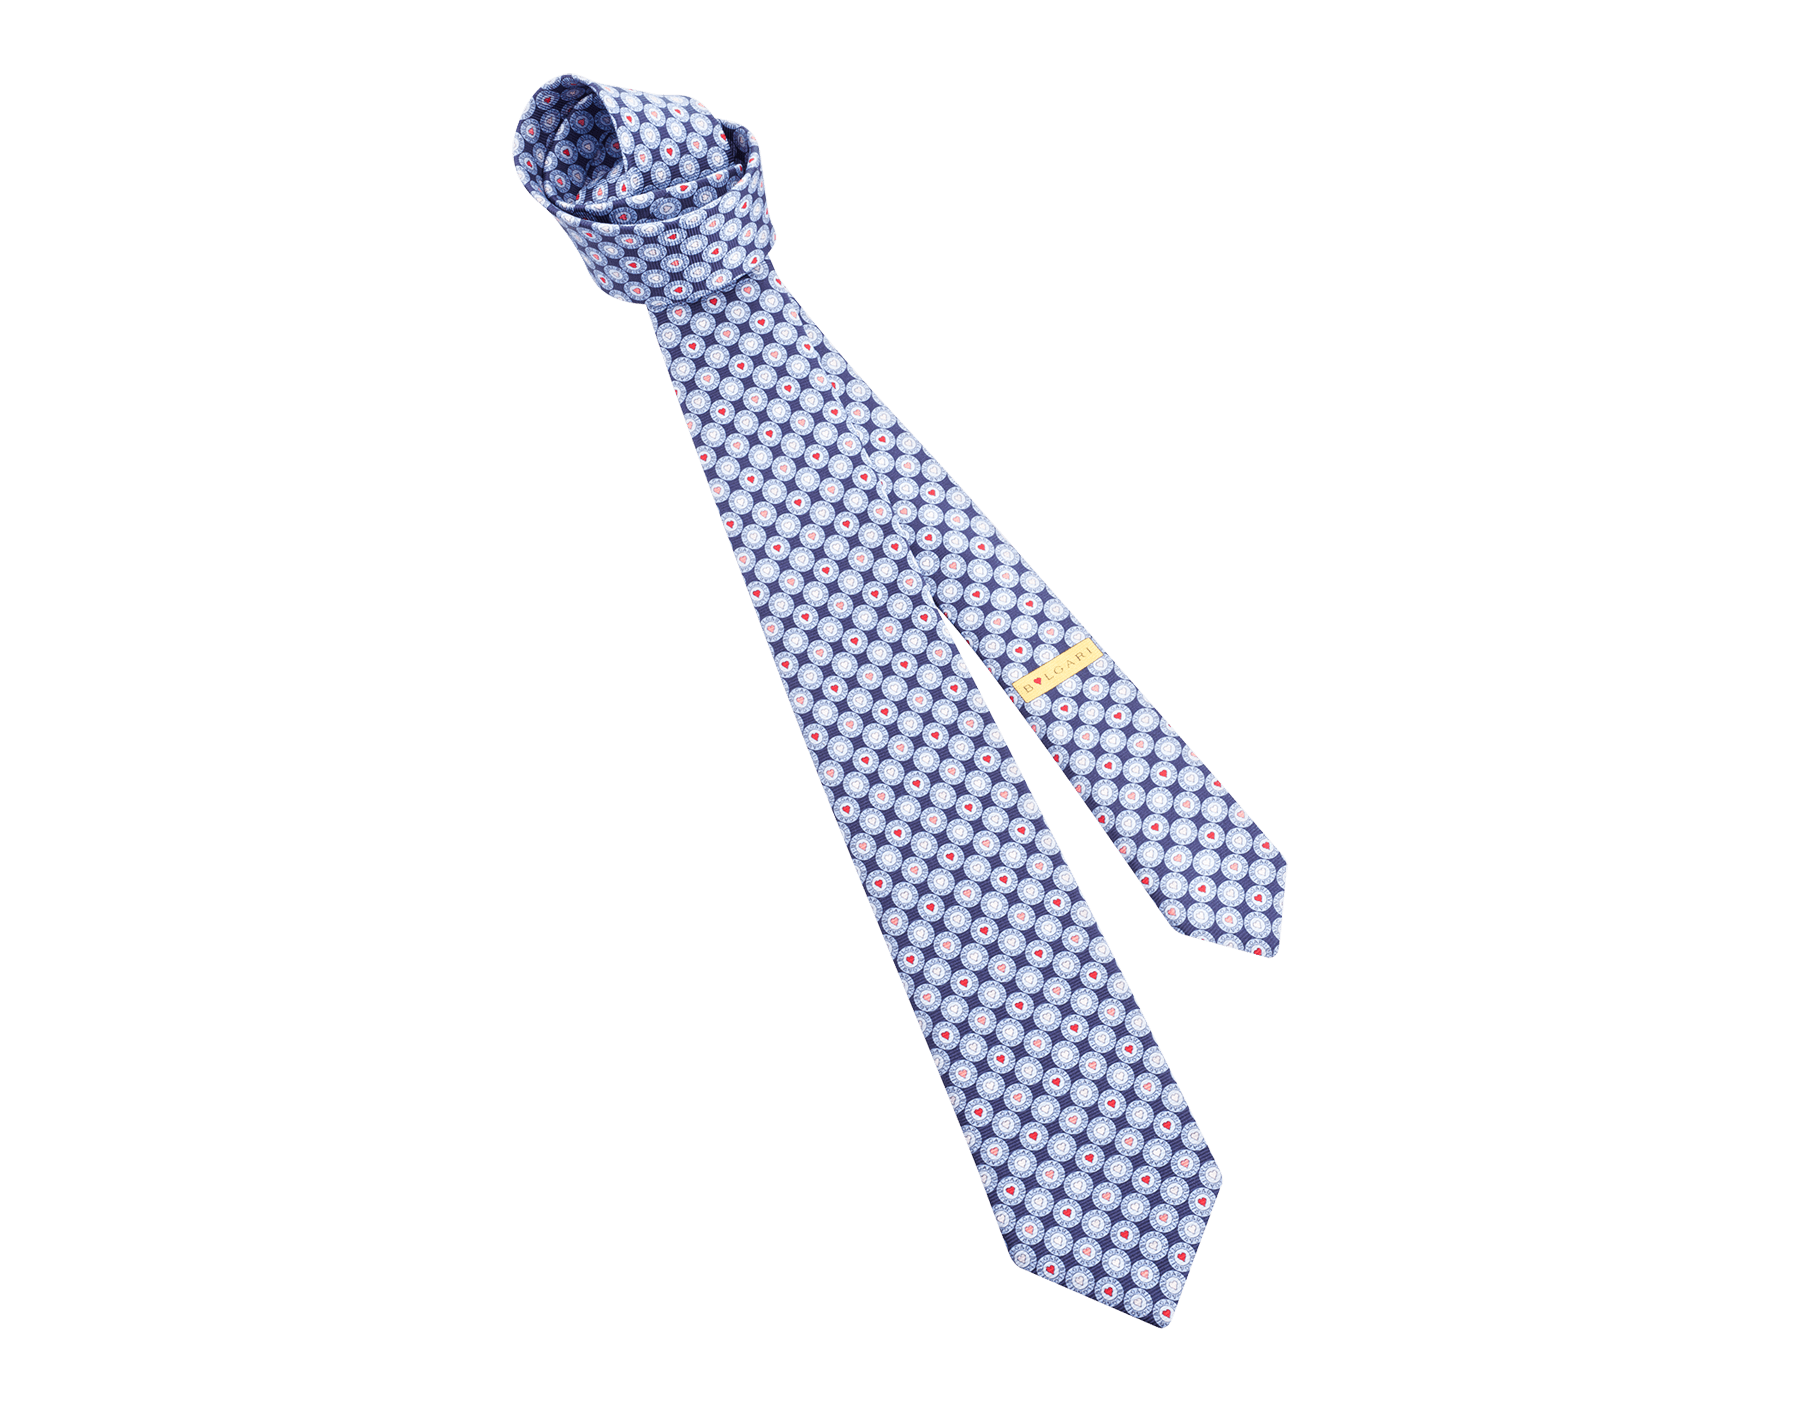 Light Blue Logo BB Heart pattern seven-fold tie in fine saglione printed silk. LogoBBHeart image 1